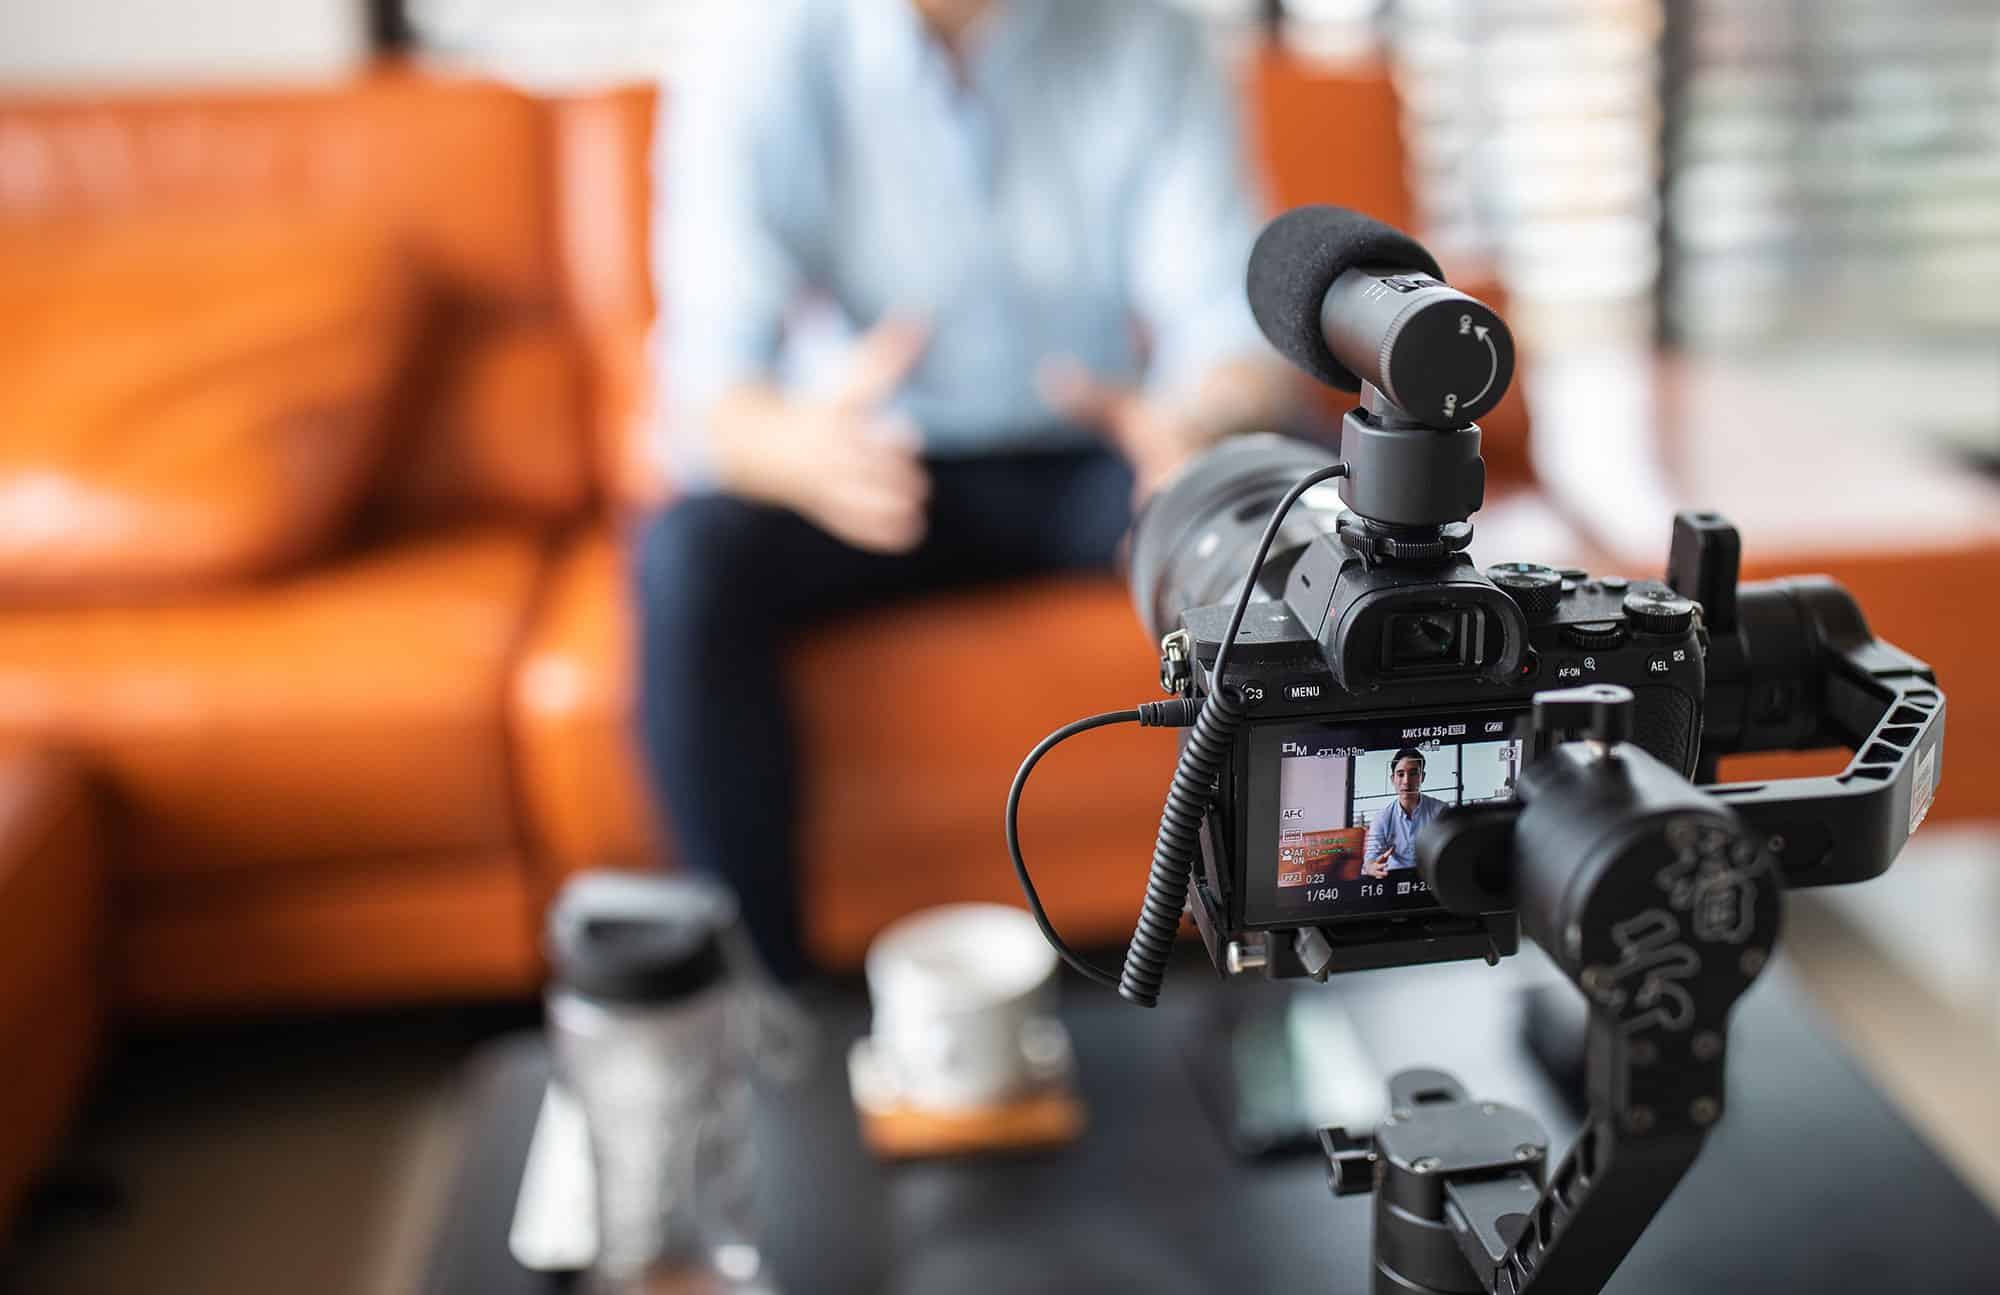 Video camera on tripod pointed at couch for interview video